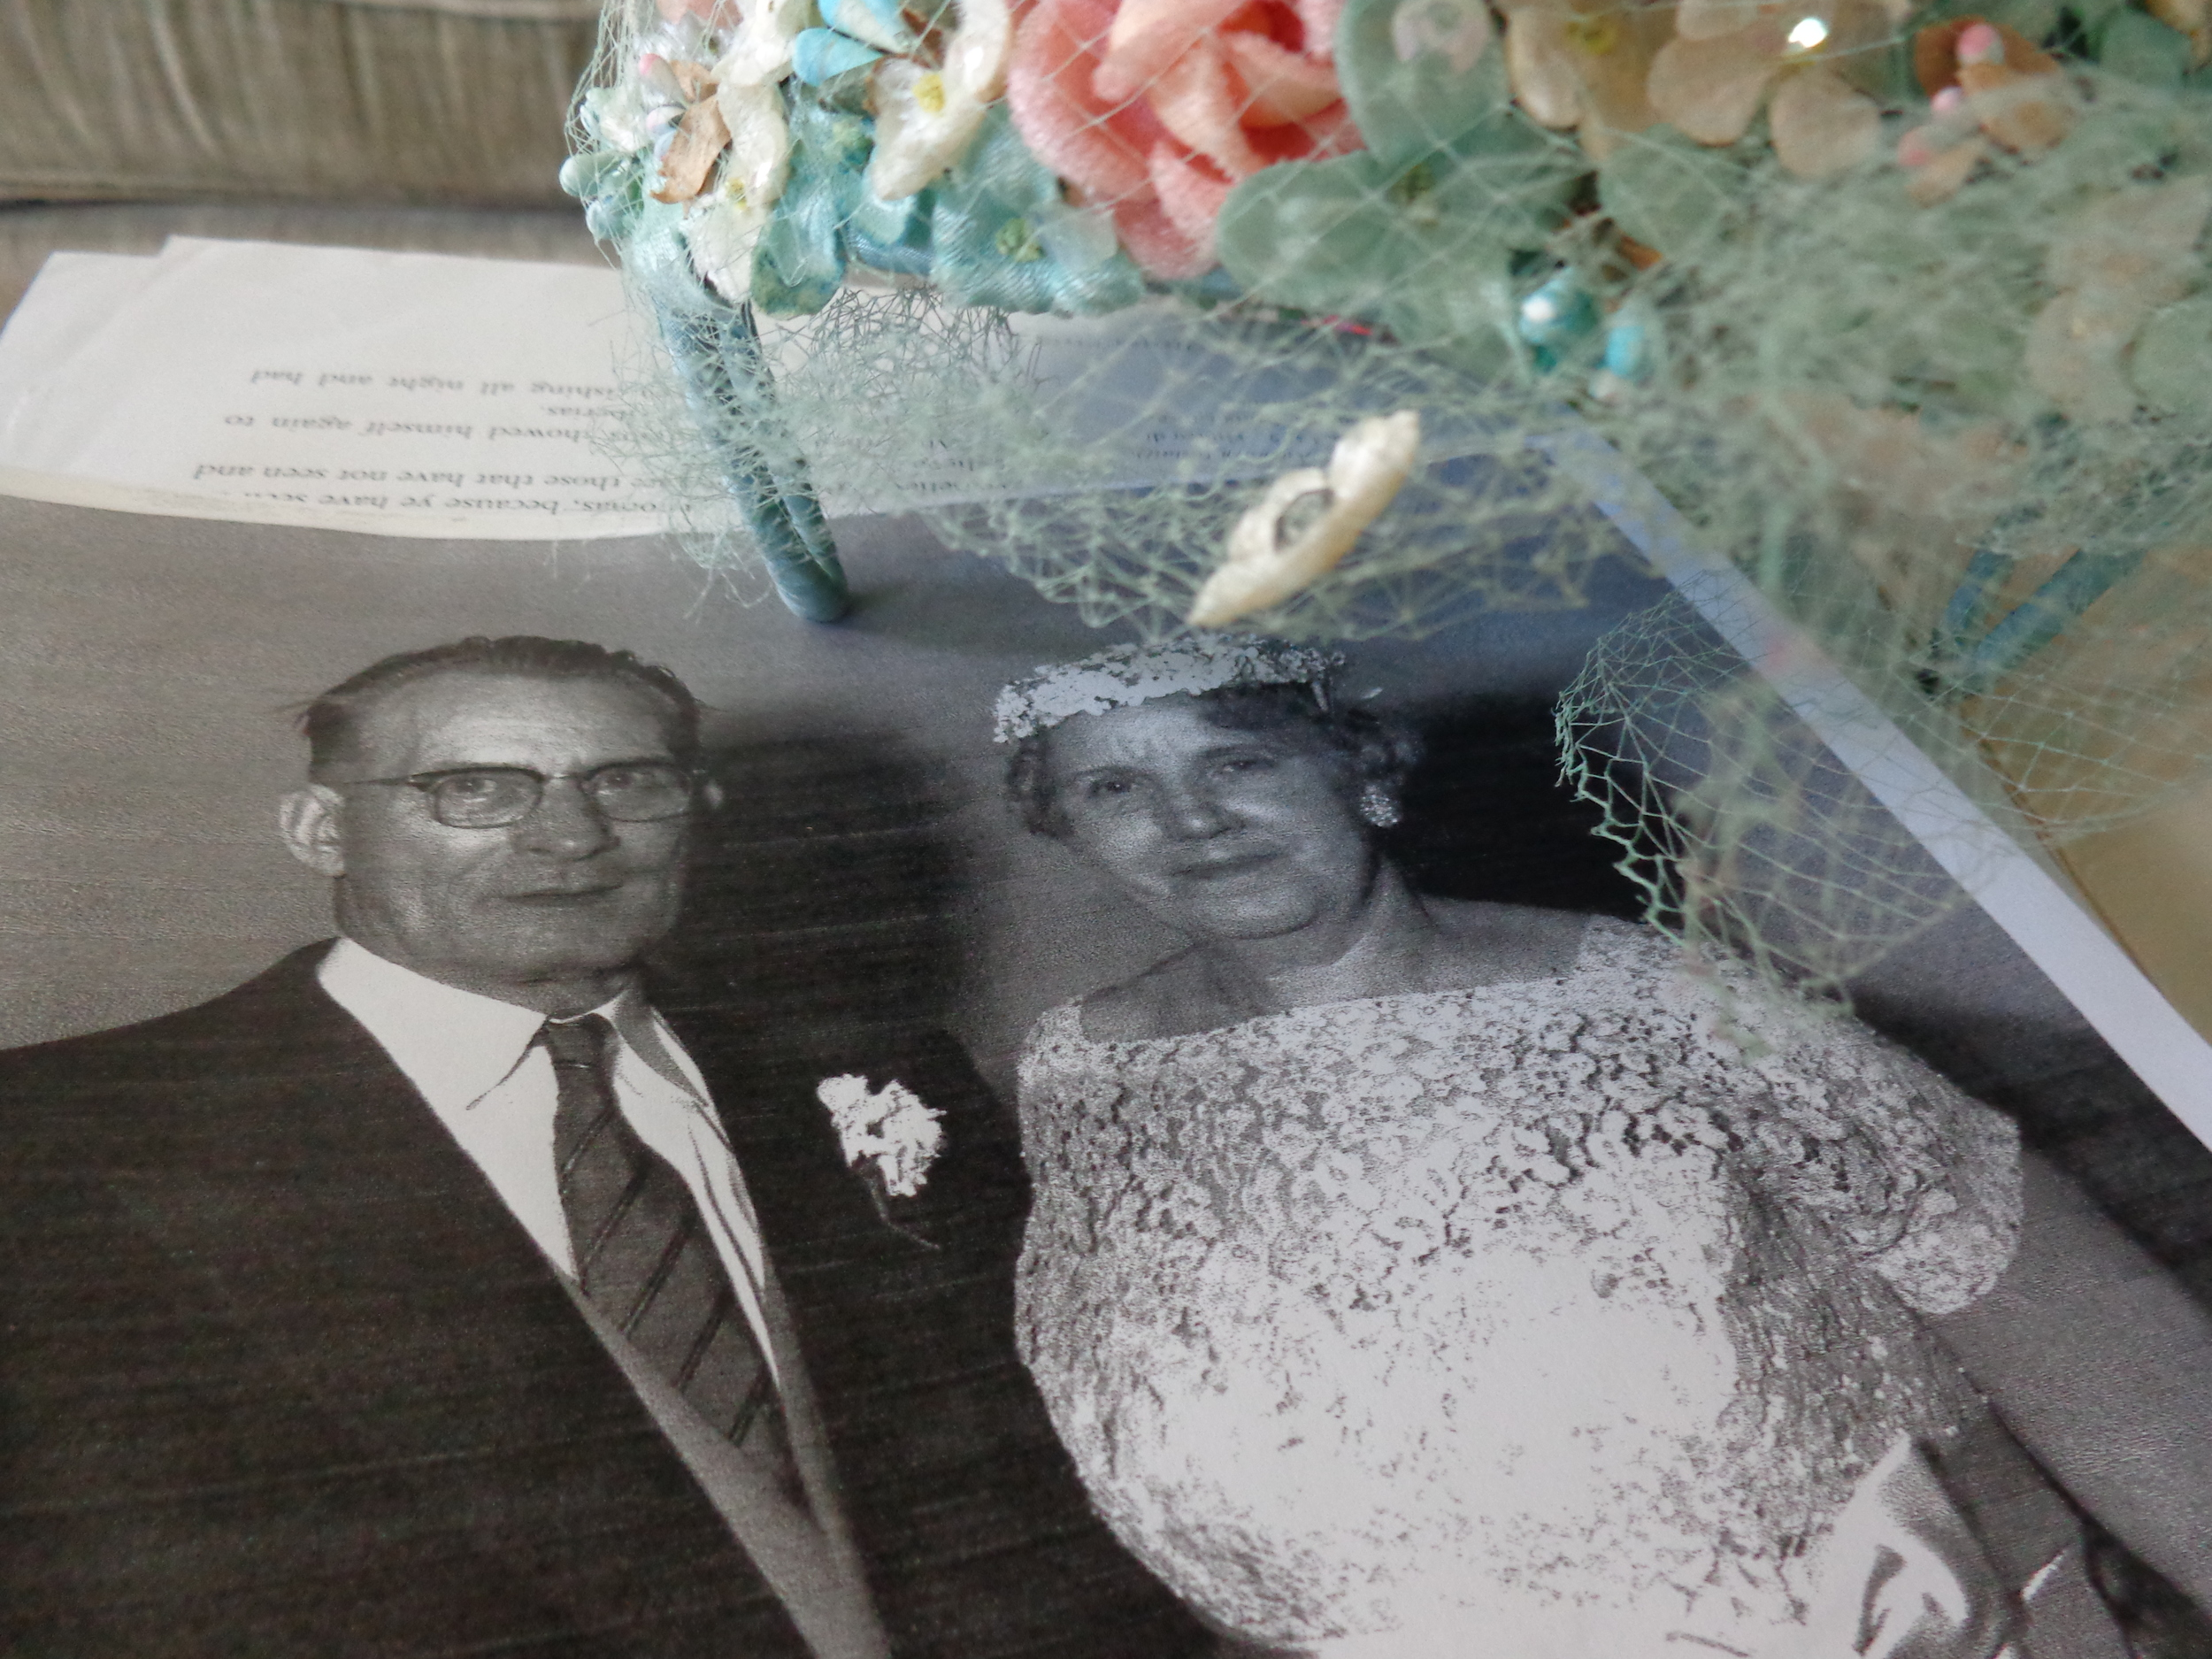 my great grandmother Alberta and my great grandfather Edward <3